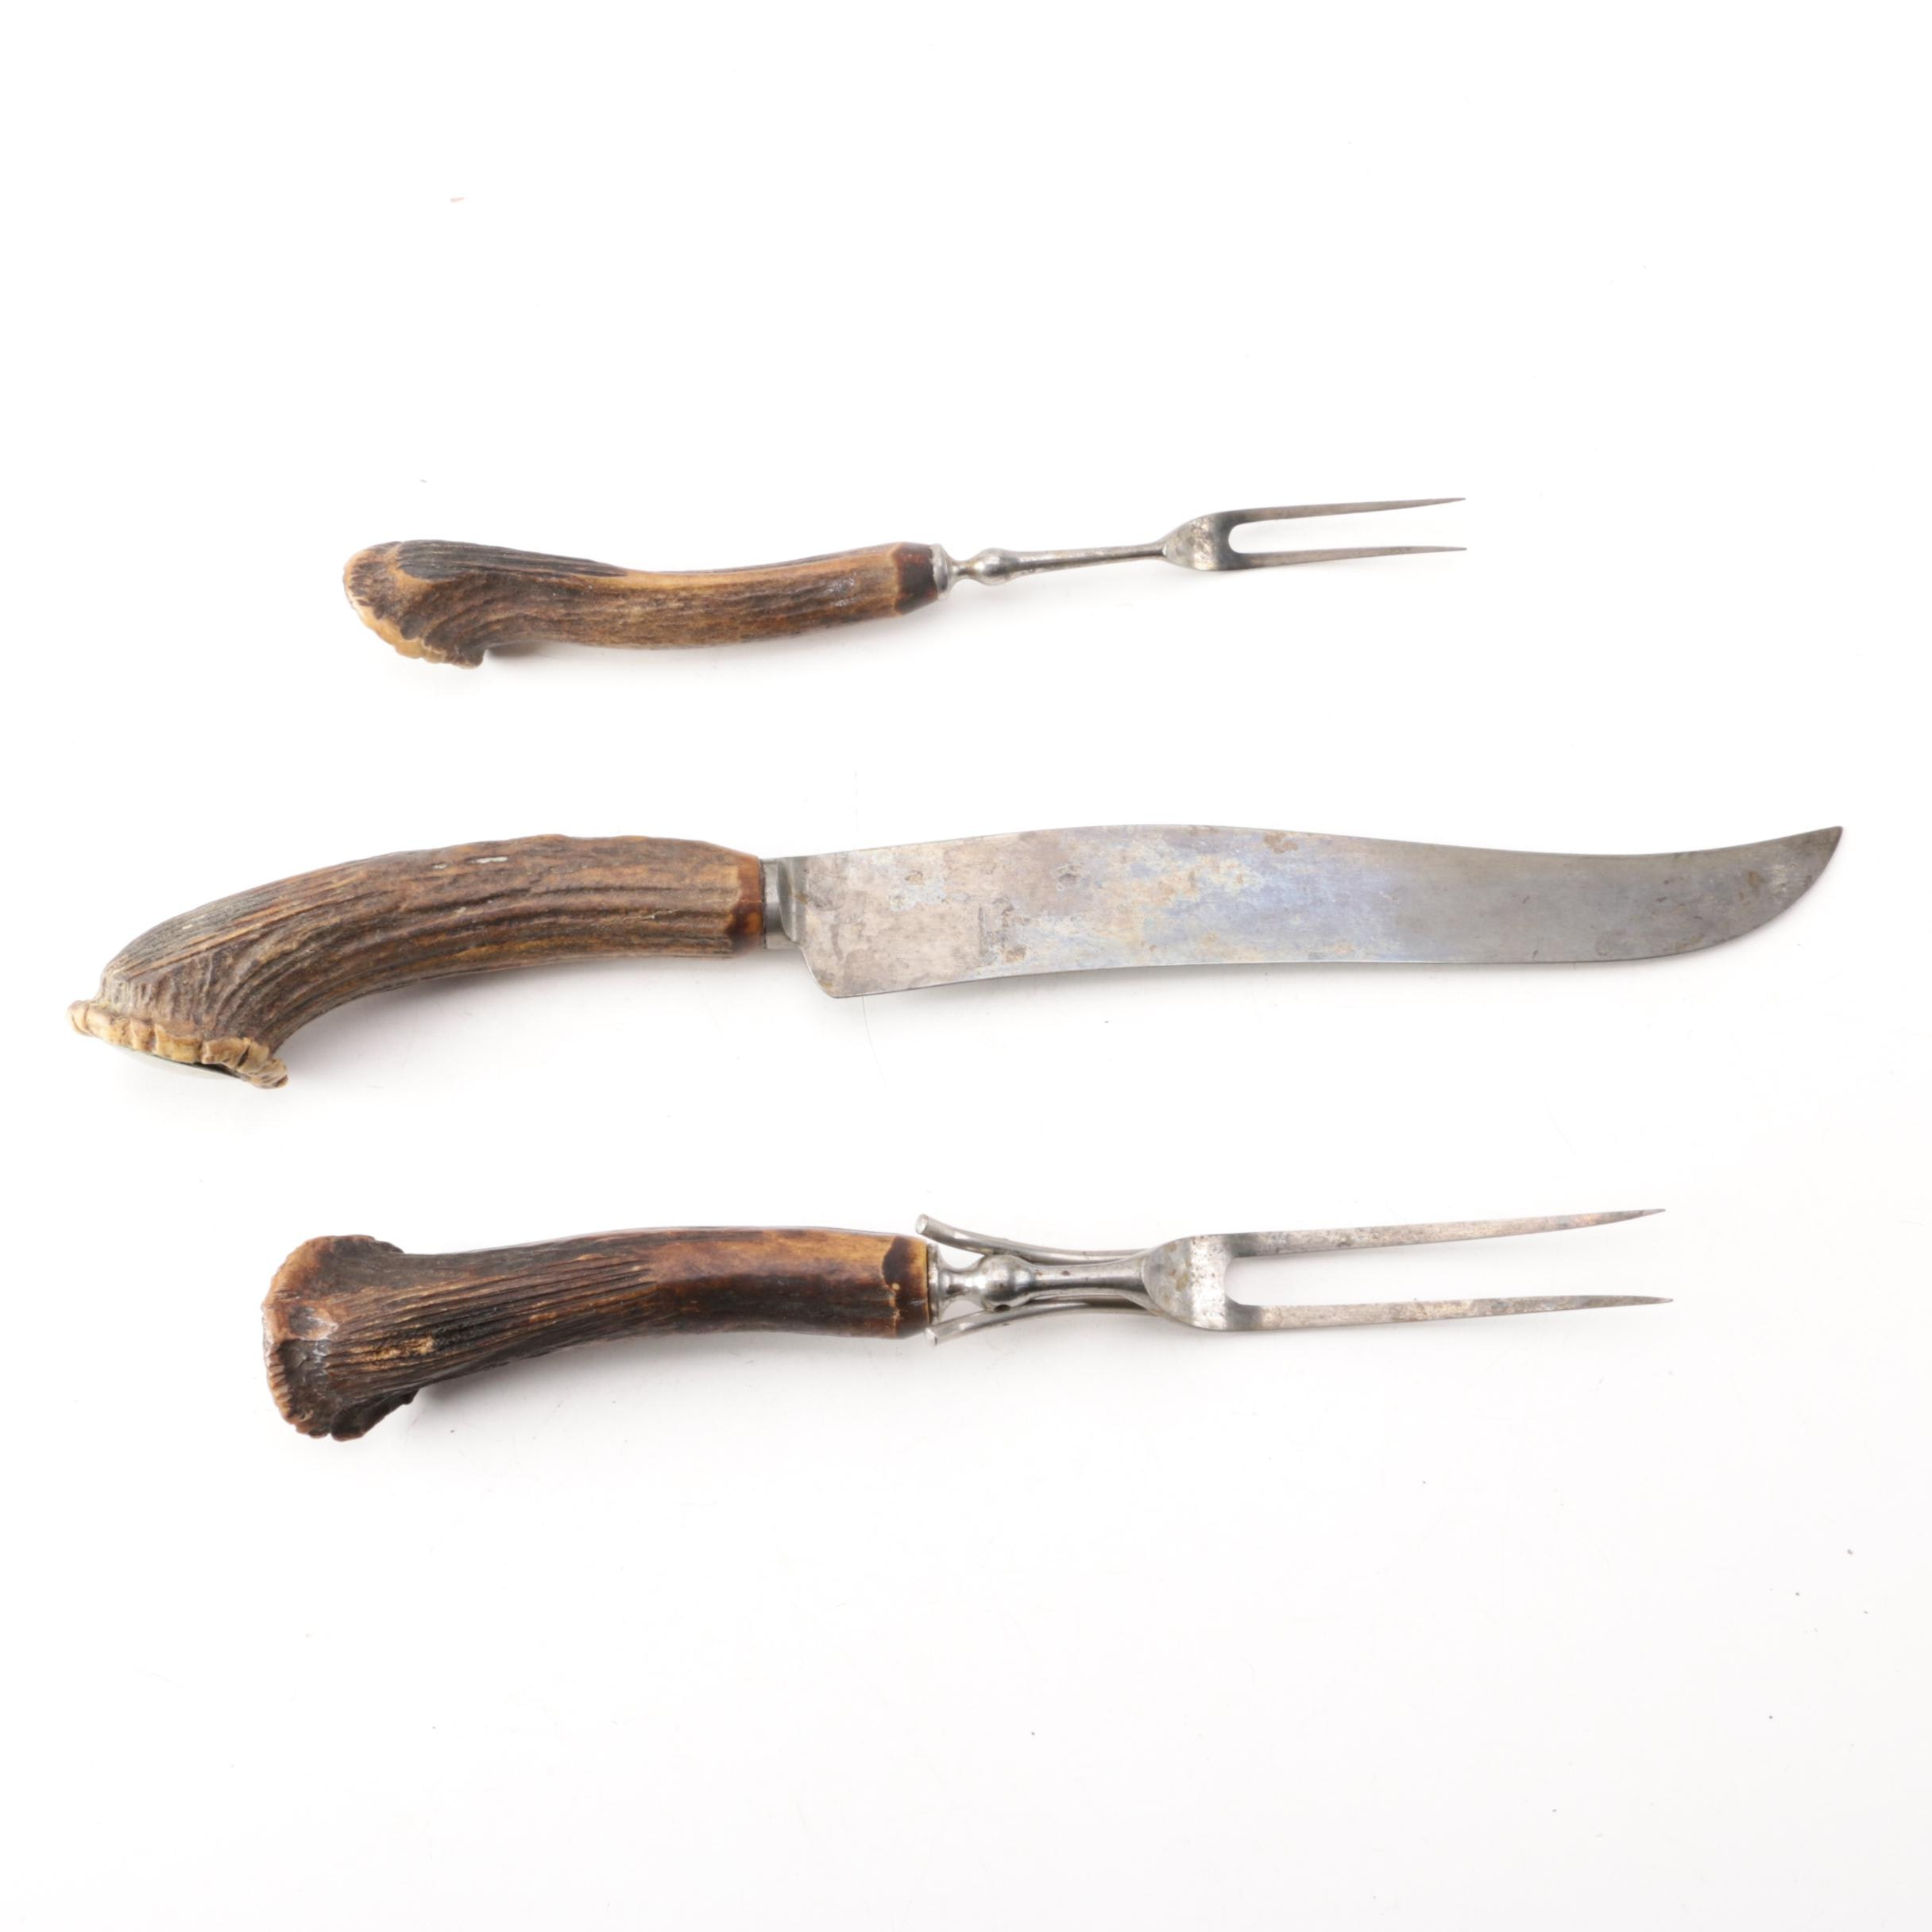 Keen Kutter Antler Handled Three-Piece Stainless Steel Carving Set